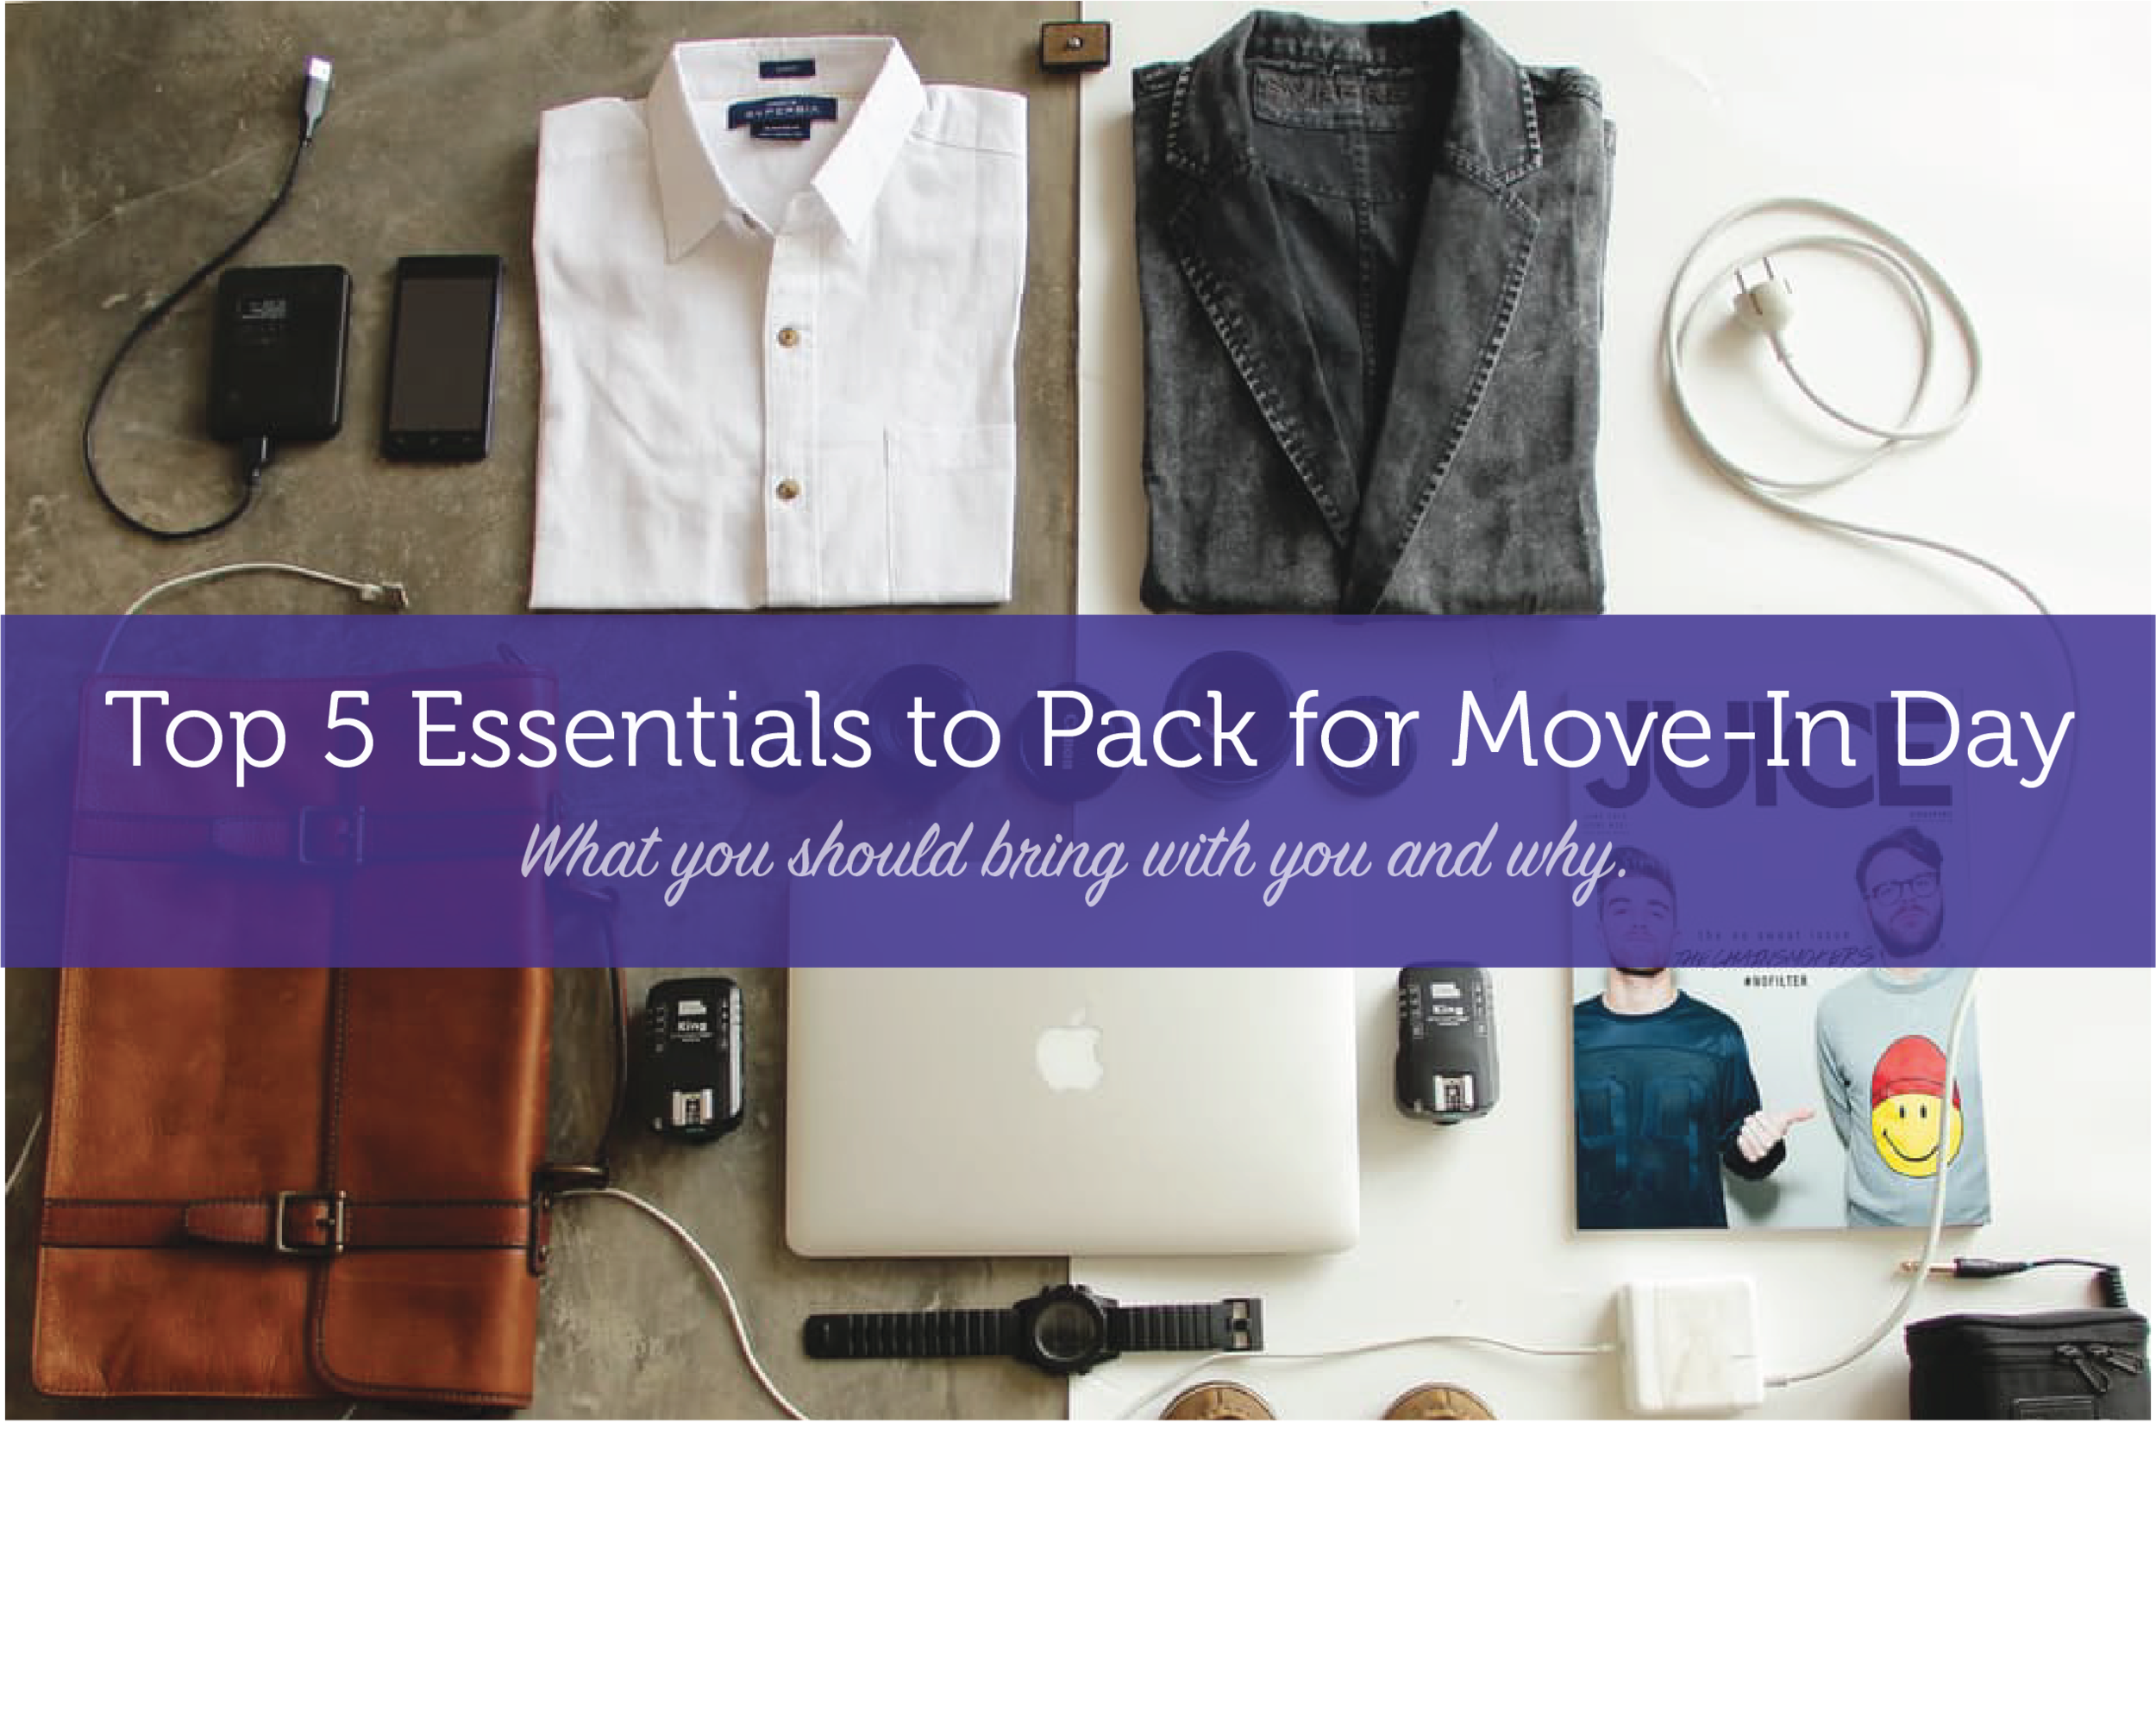 Top 5 essentials to pack for move-in day. Moving. what to pack when moving